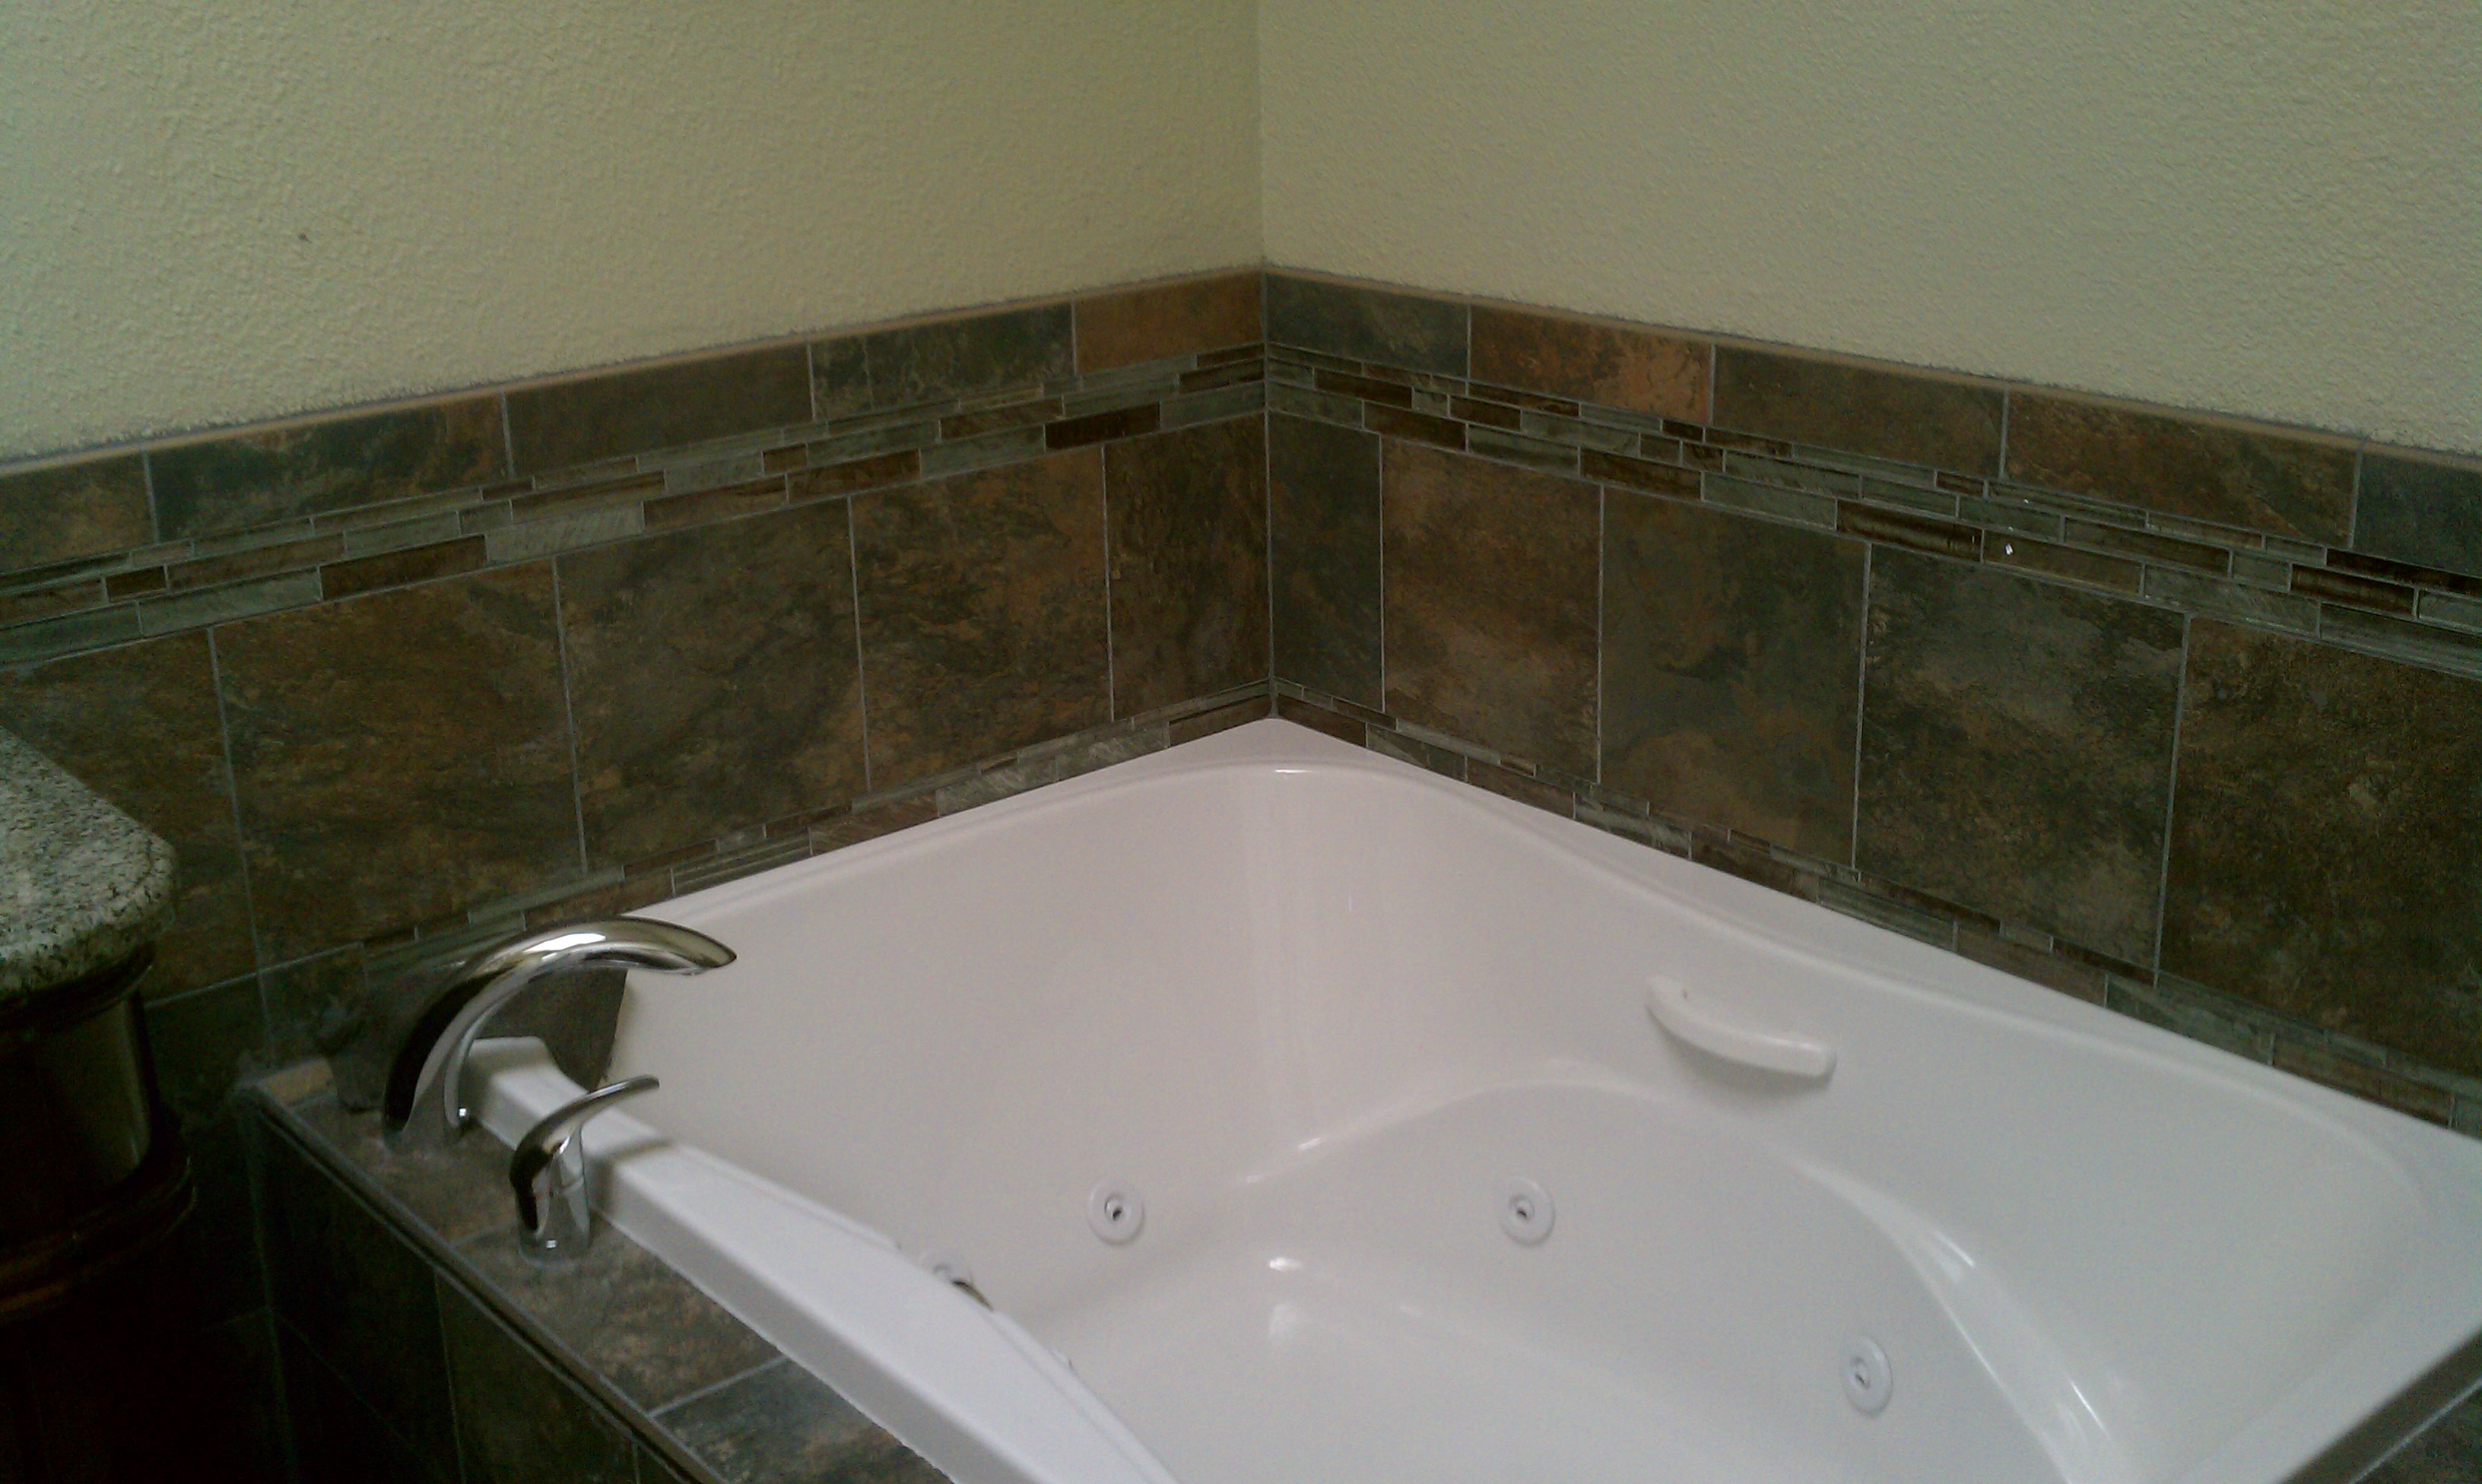 me and monmouth remodeling beautiful bathroom zhis county on marvelous for remodel nj contractor middlesex